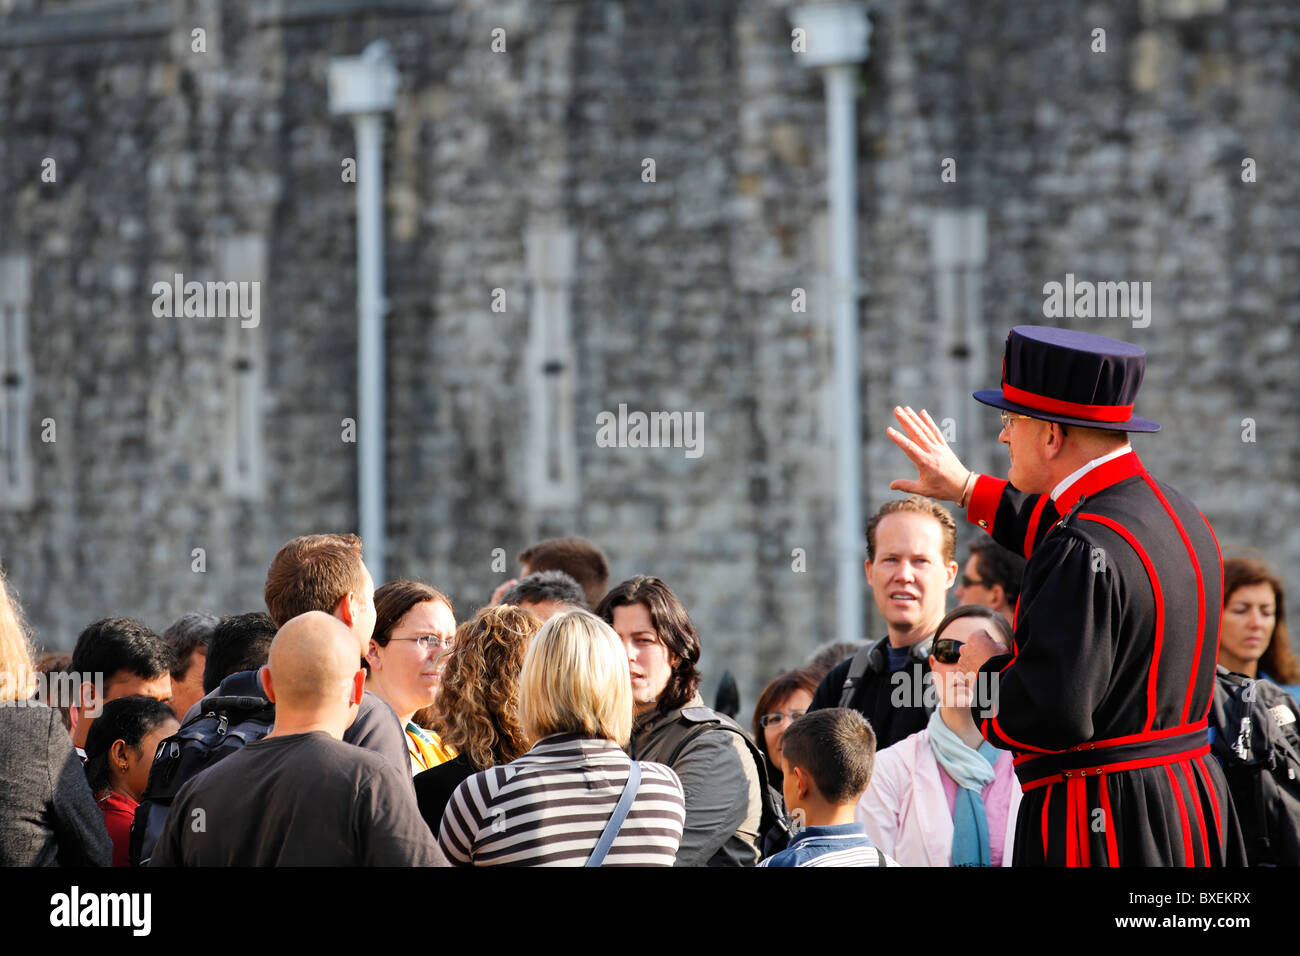 Beefeater with a tour group at the Tower of London, UK - Stock Image